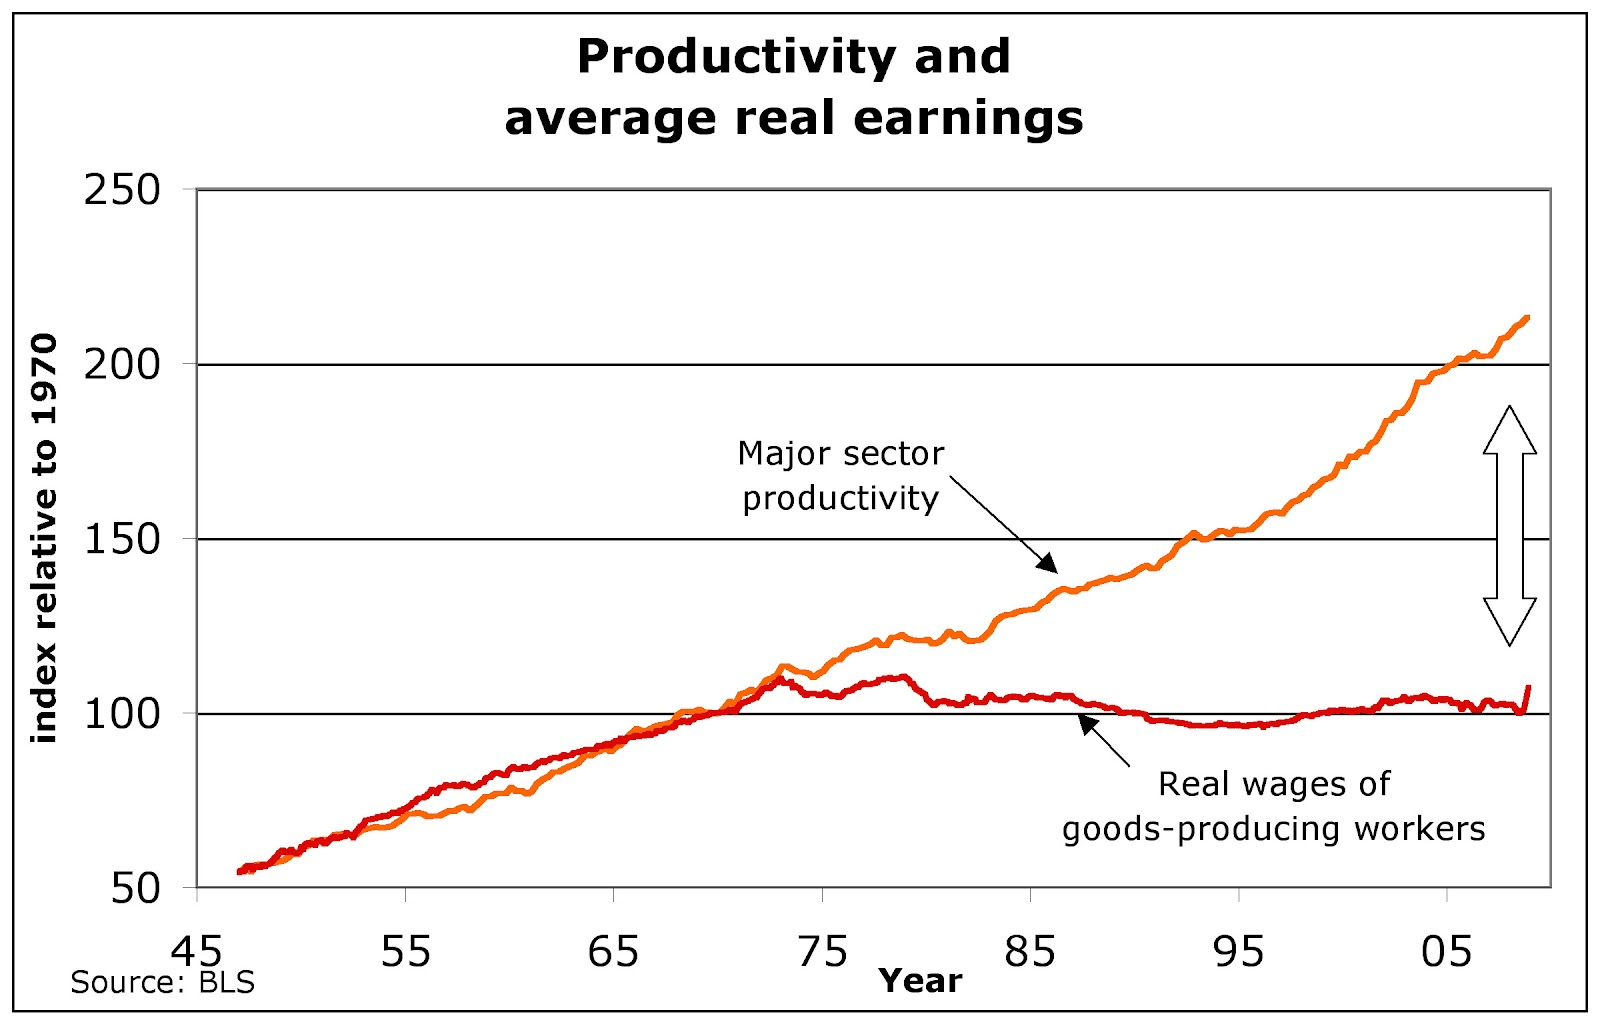 said that if productivity does not lead to a corresponding increase ...